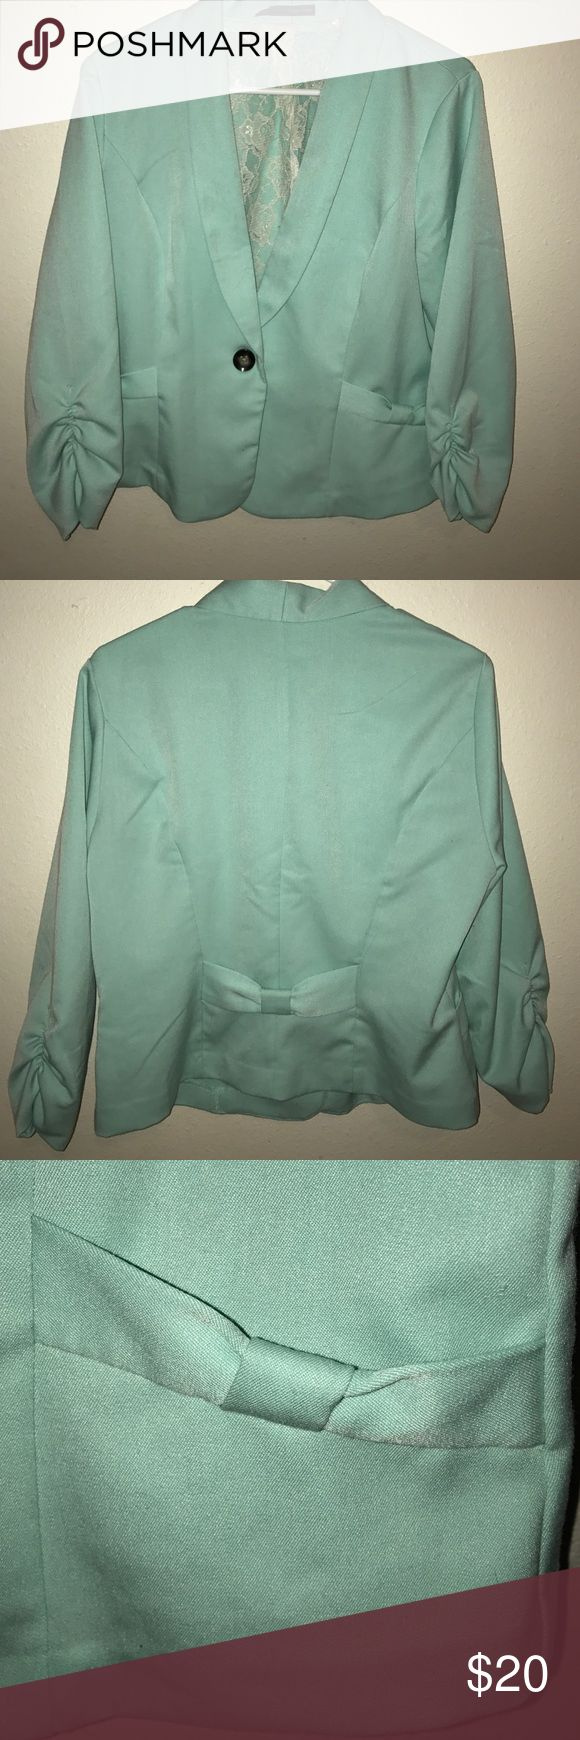 Turquoise Blazer Turquoise blazer with small stain on the inside by button stitching. Maurices Jackets & Coats Blazers